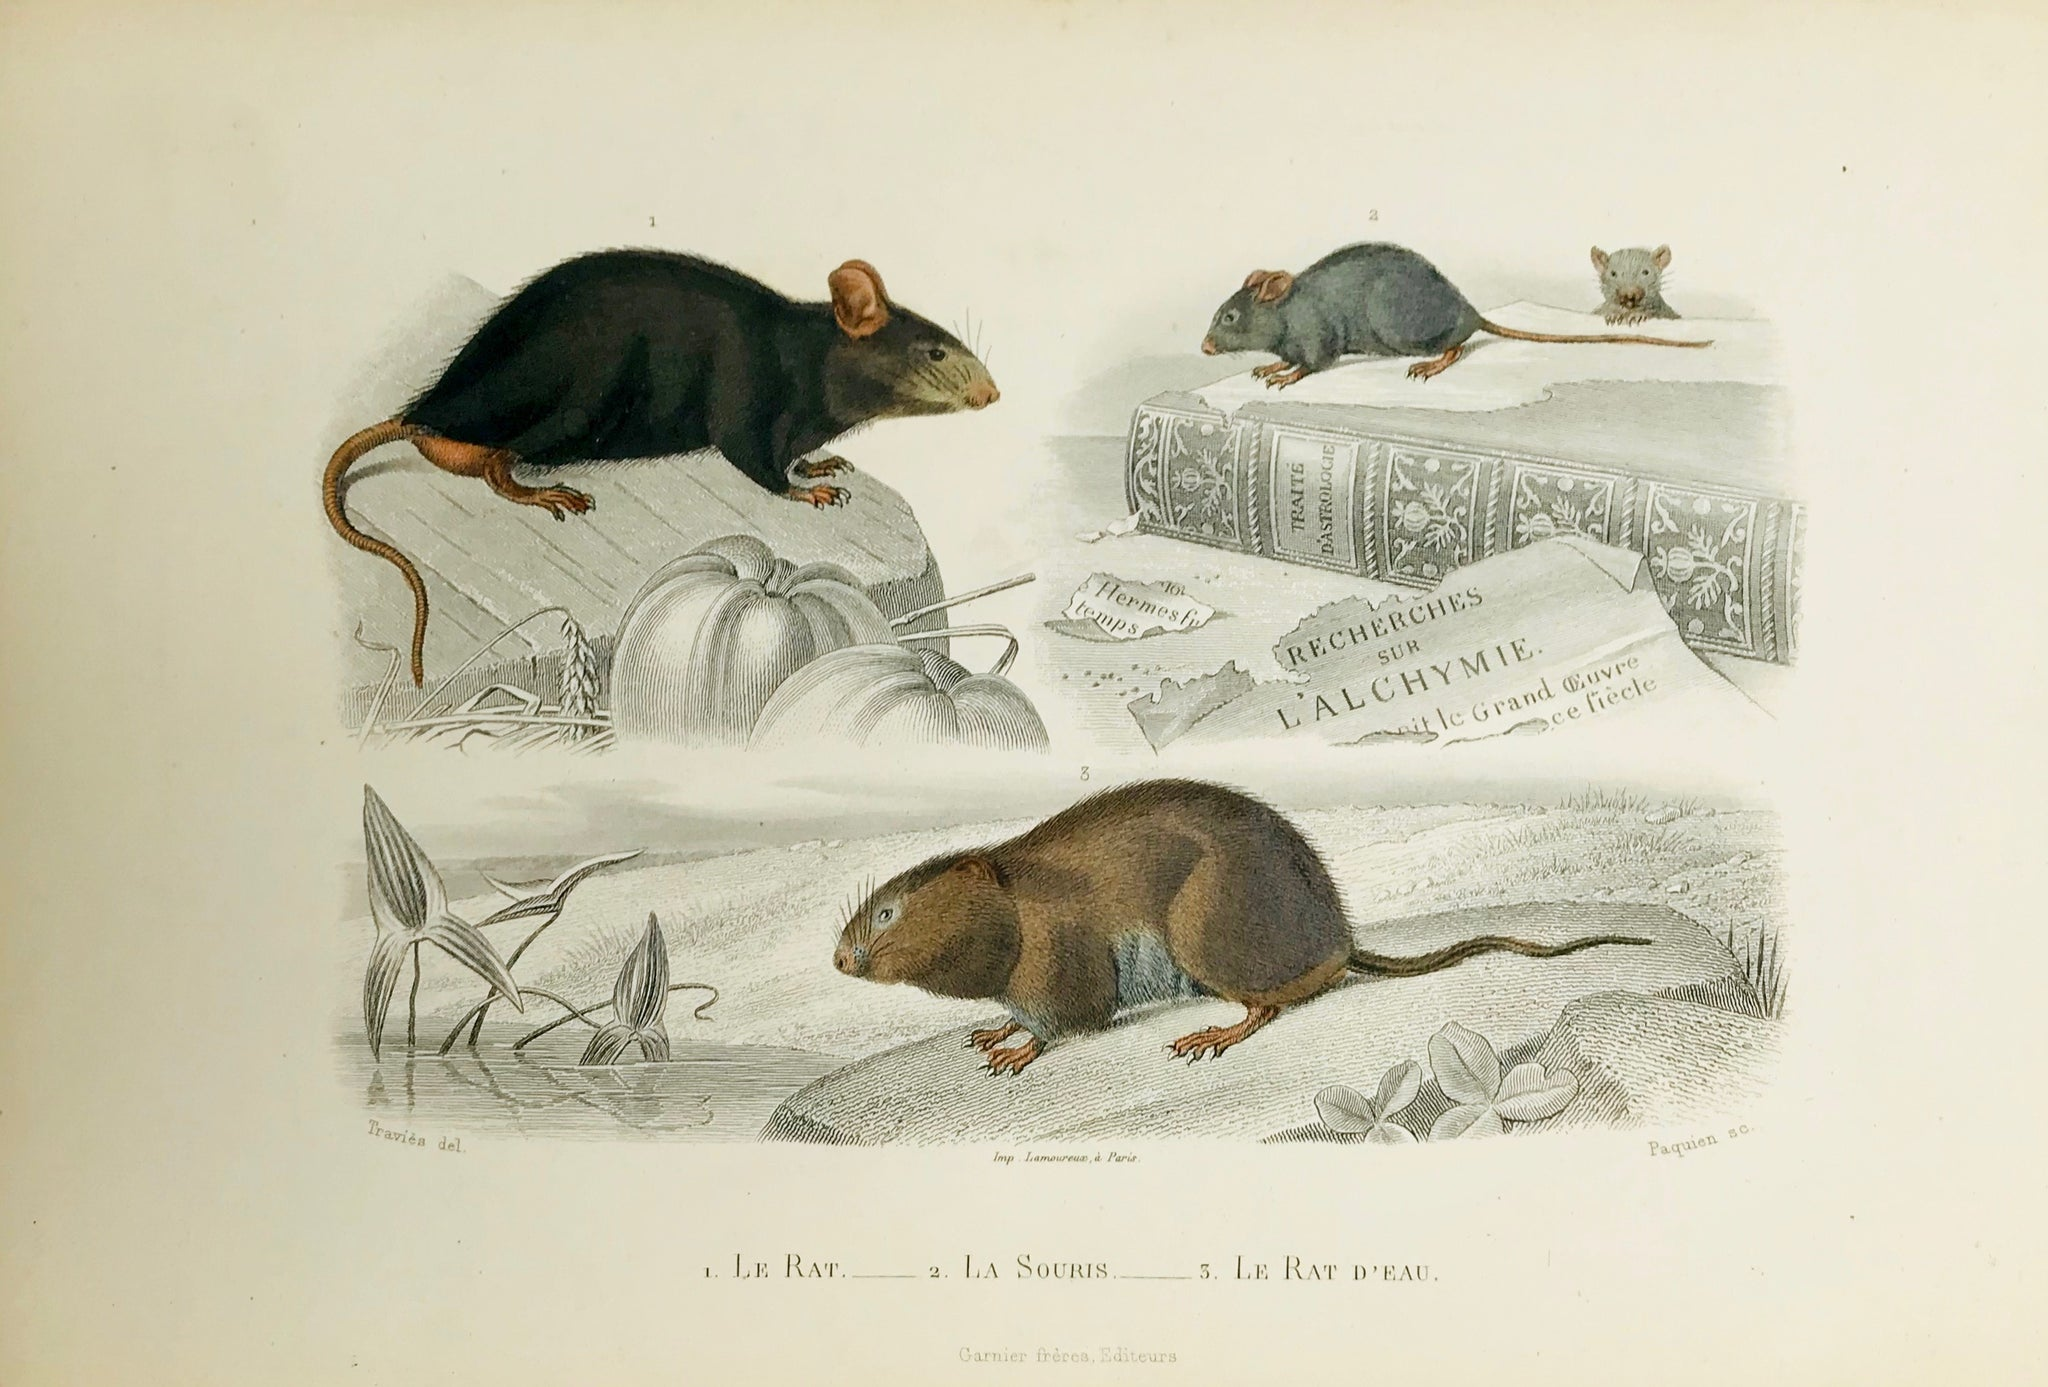 1. Le Rat 2. Le Souris 3. Le Rat D´eau  Wood engraving edited by Garnier Freres in Paris ca 1860. Original hand coloring.